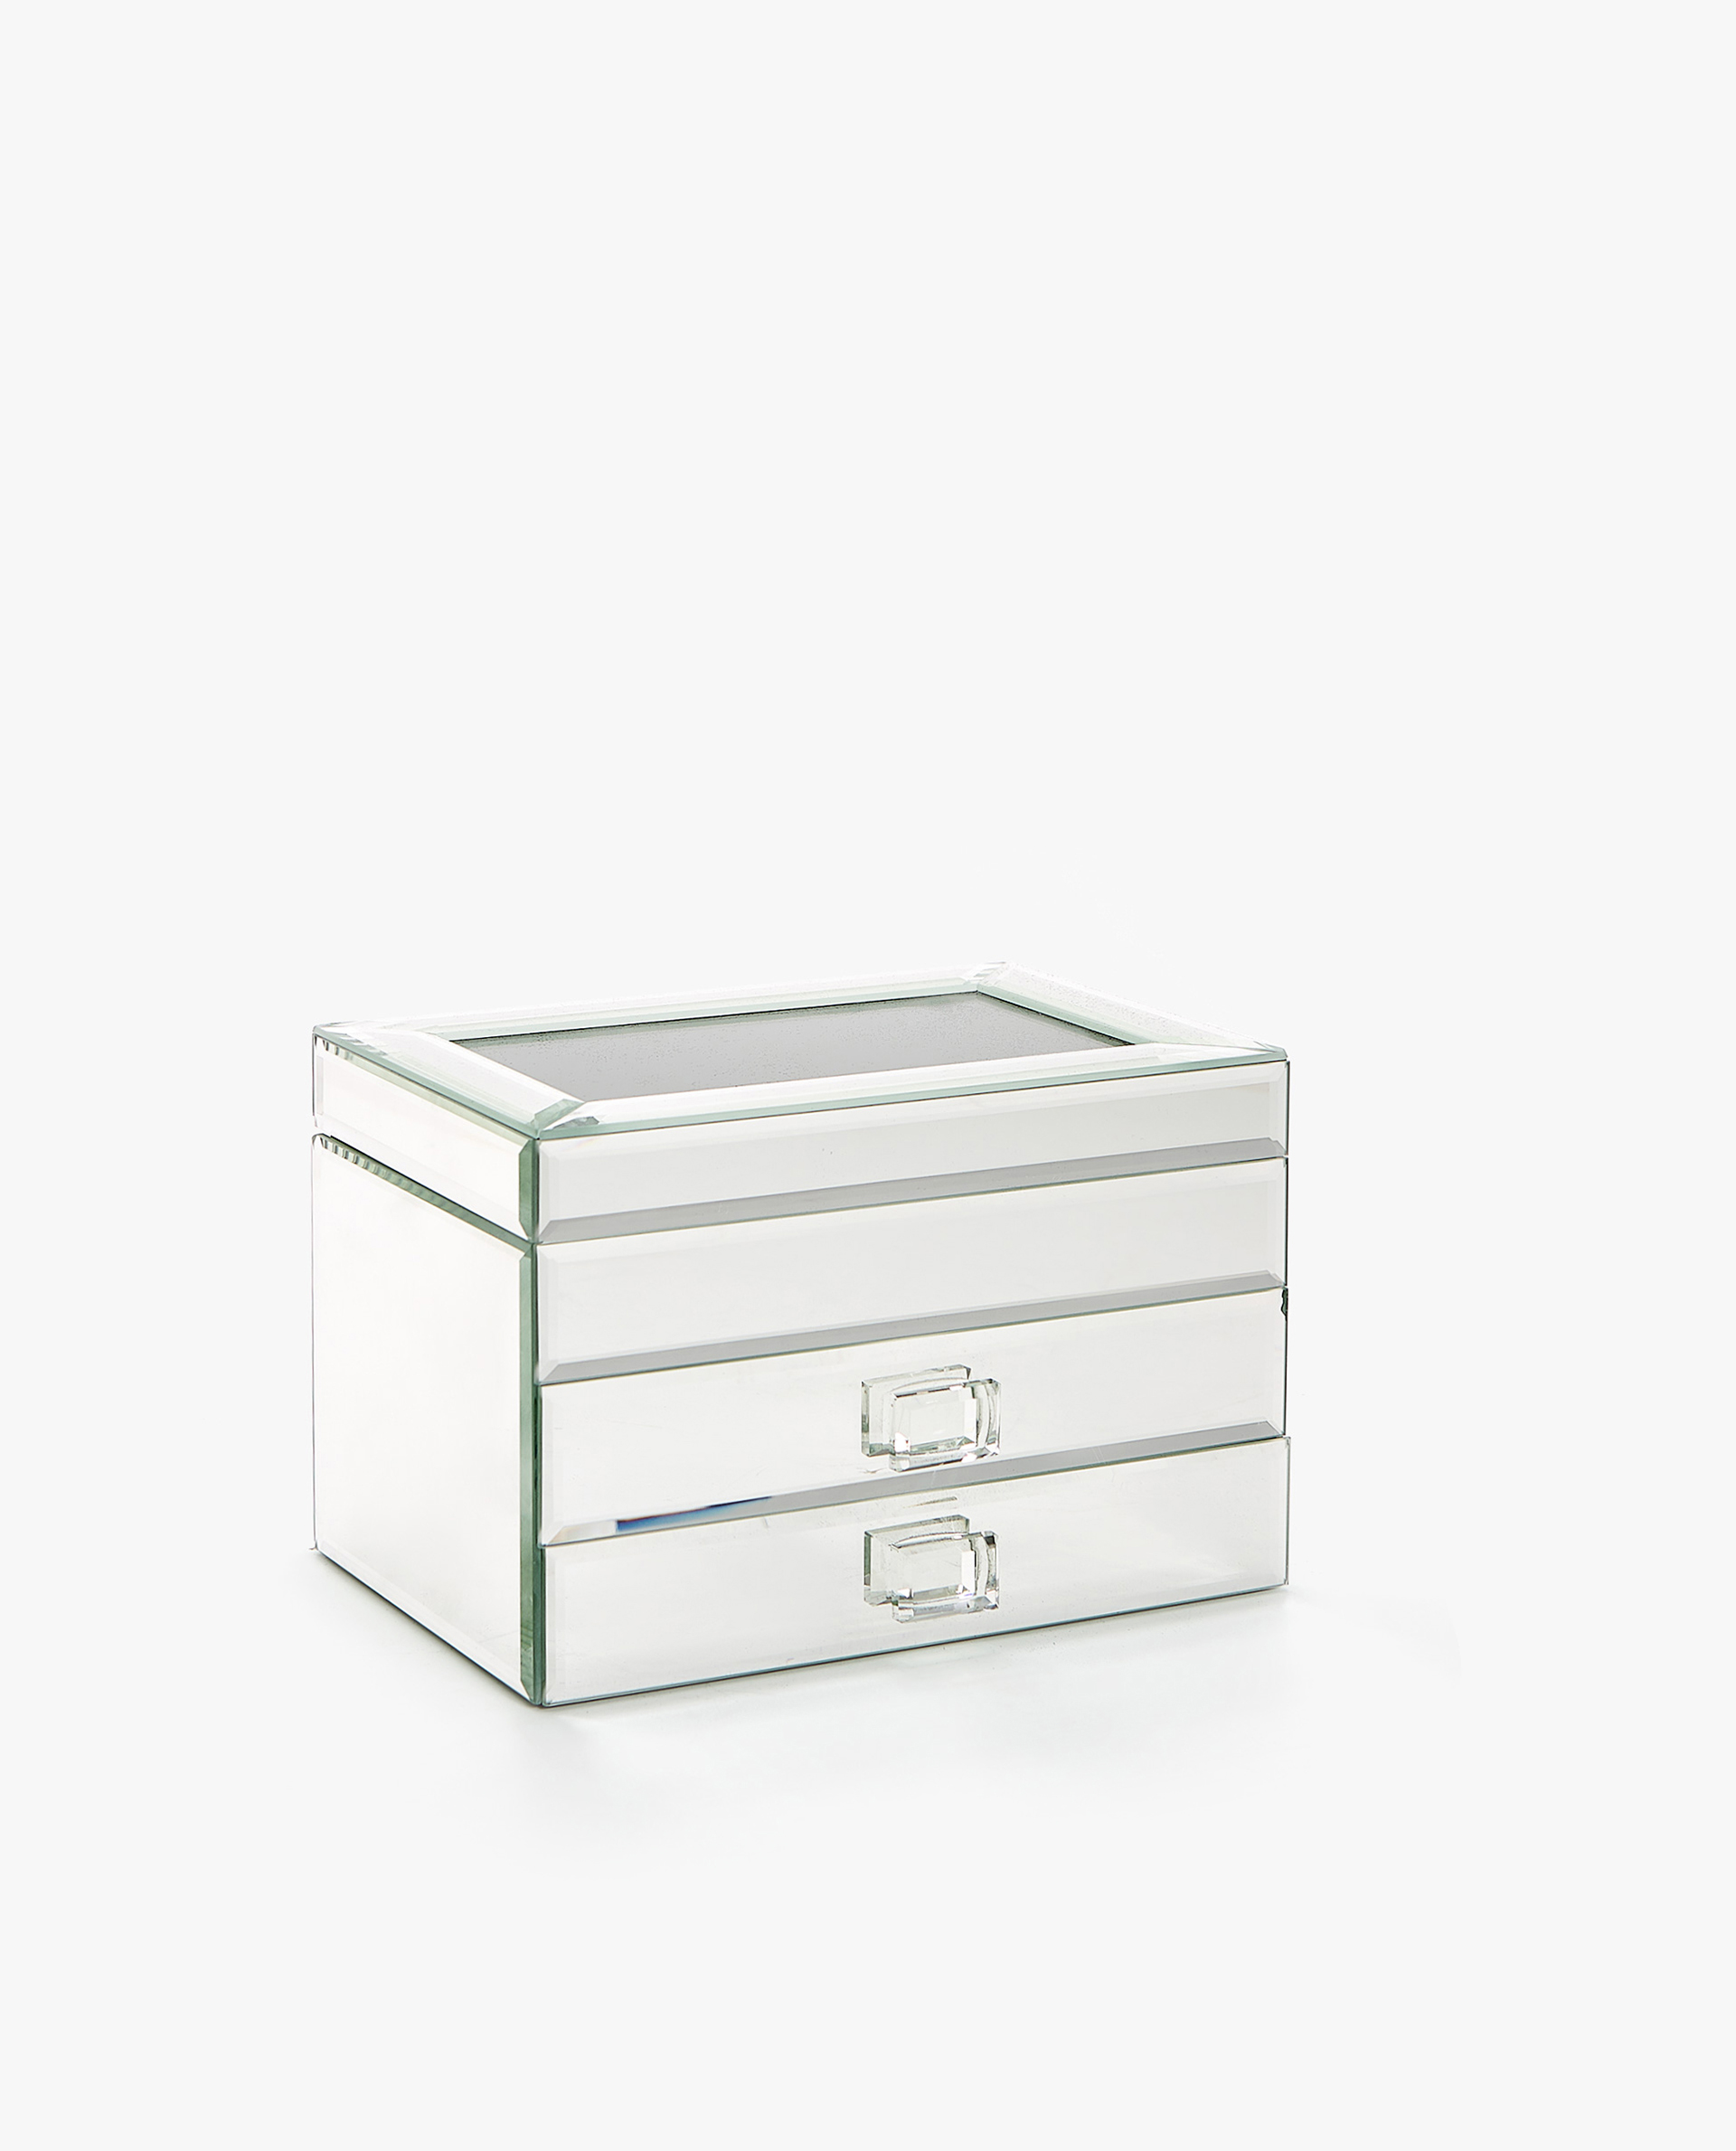 Image 1 Of The Product Mirrored Jewellery Box With Drawers